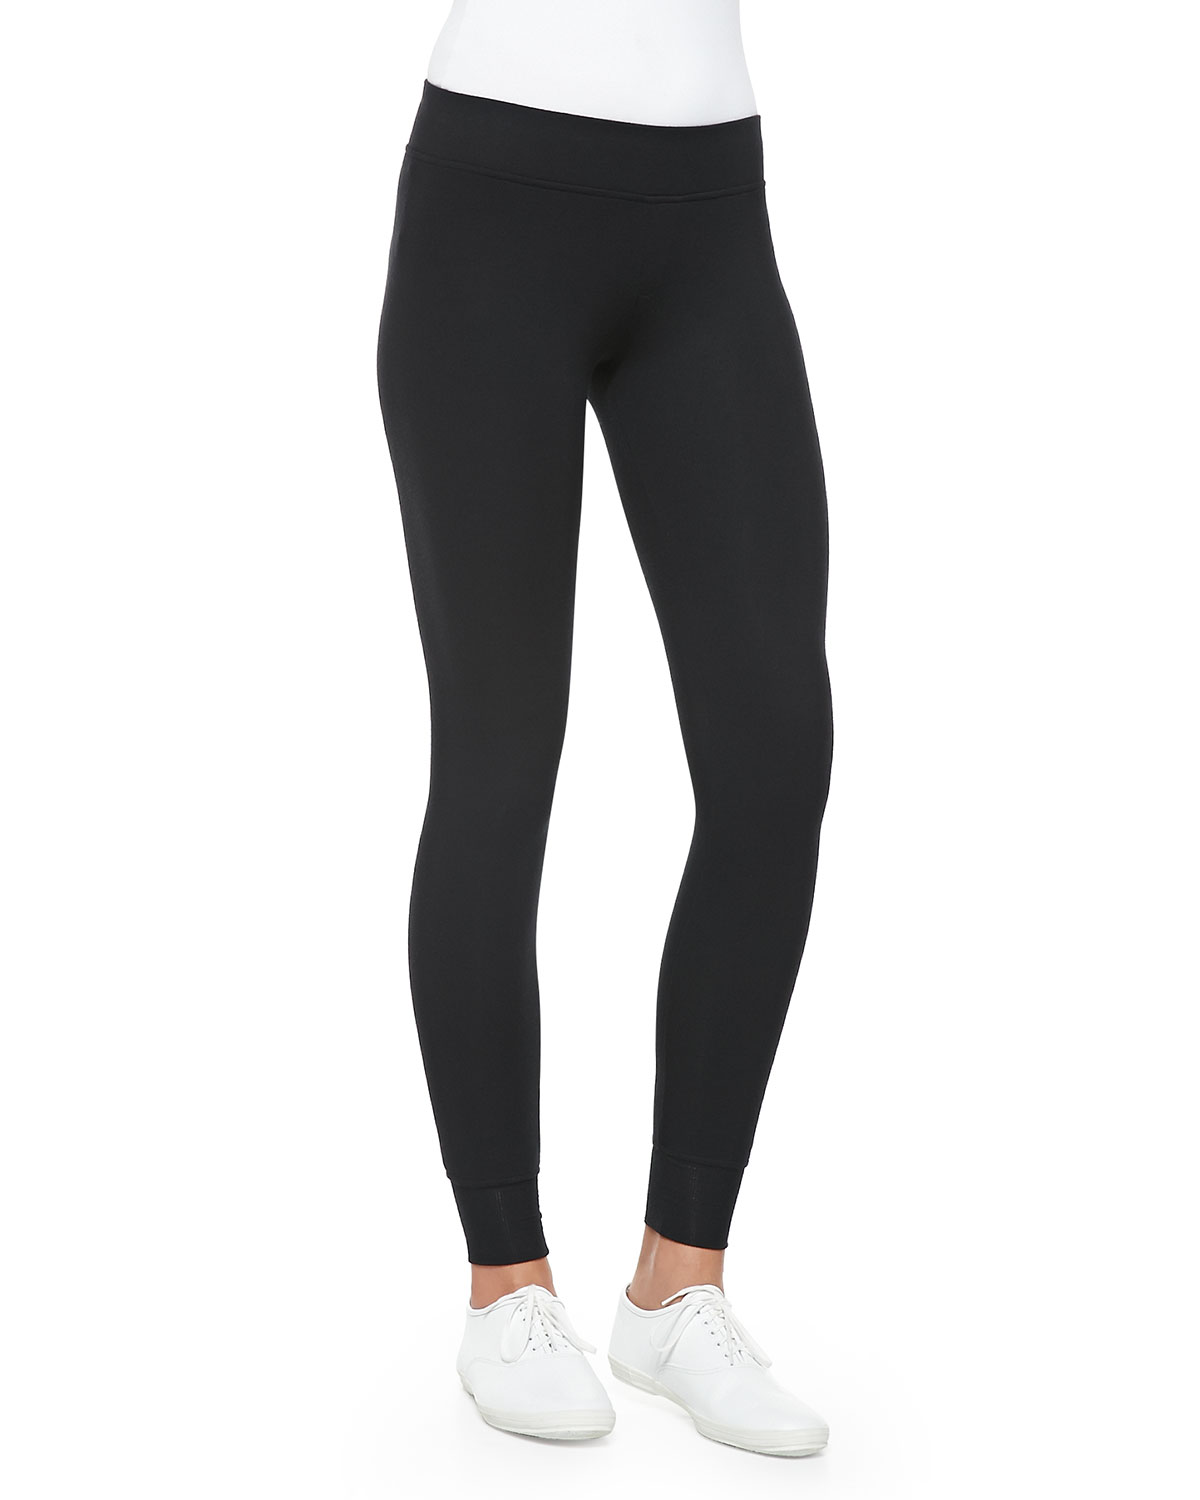 Full-Length Double-Layer Yoga Tights, Women's, Size: M, Black - ATM